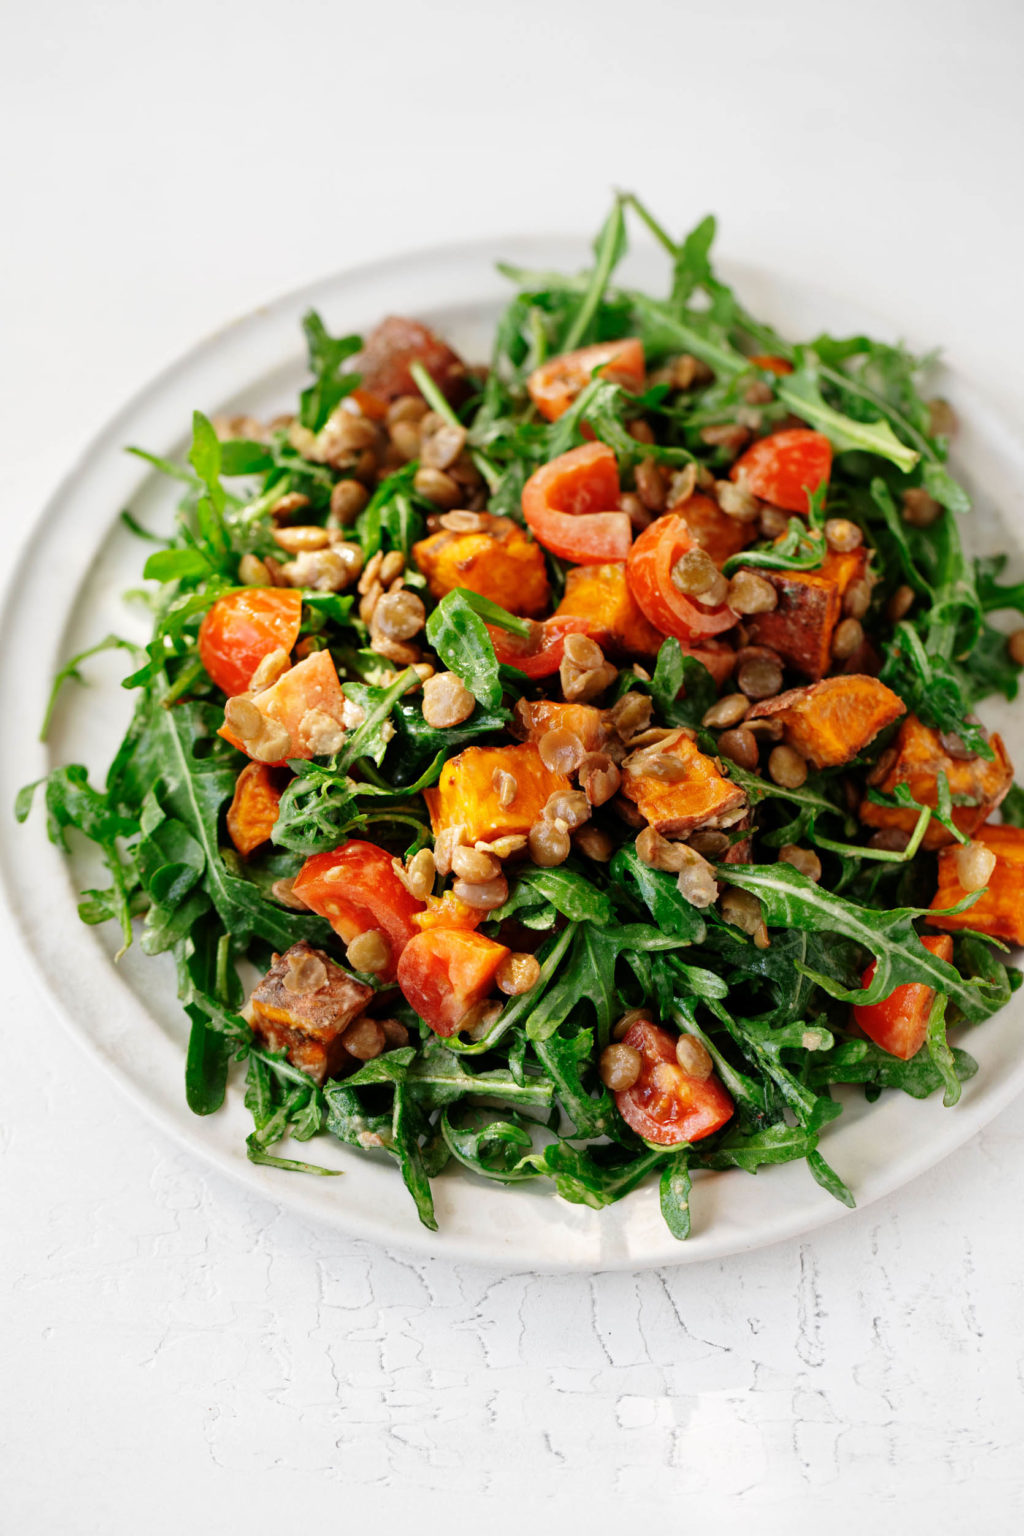 A round white plate has been covered in a colorful, creamy lentil tahini sweet potato salad.